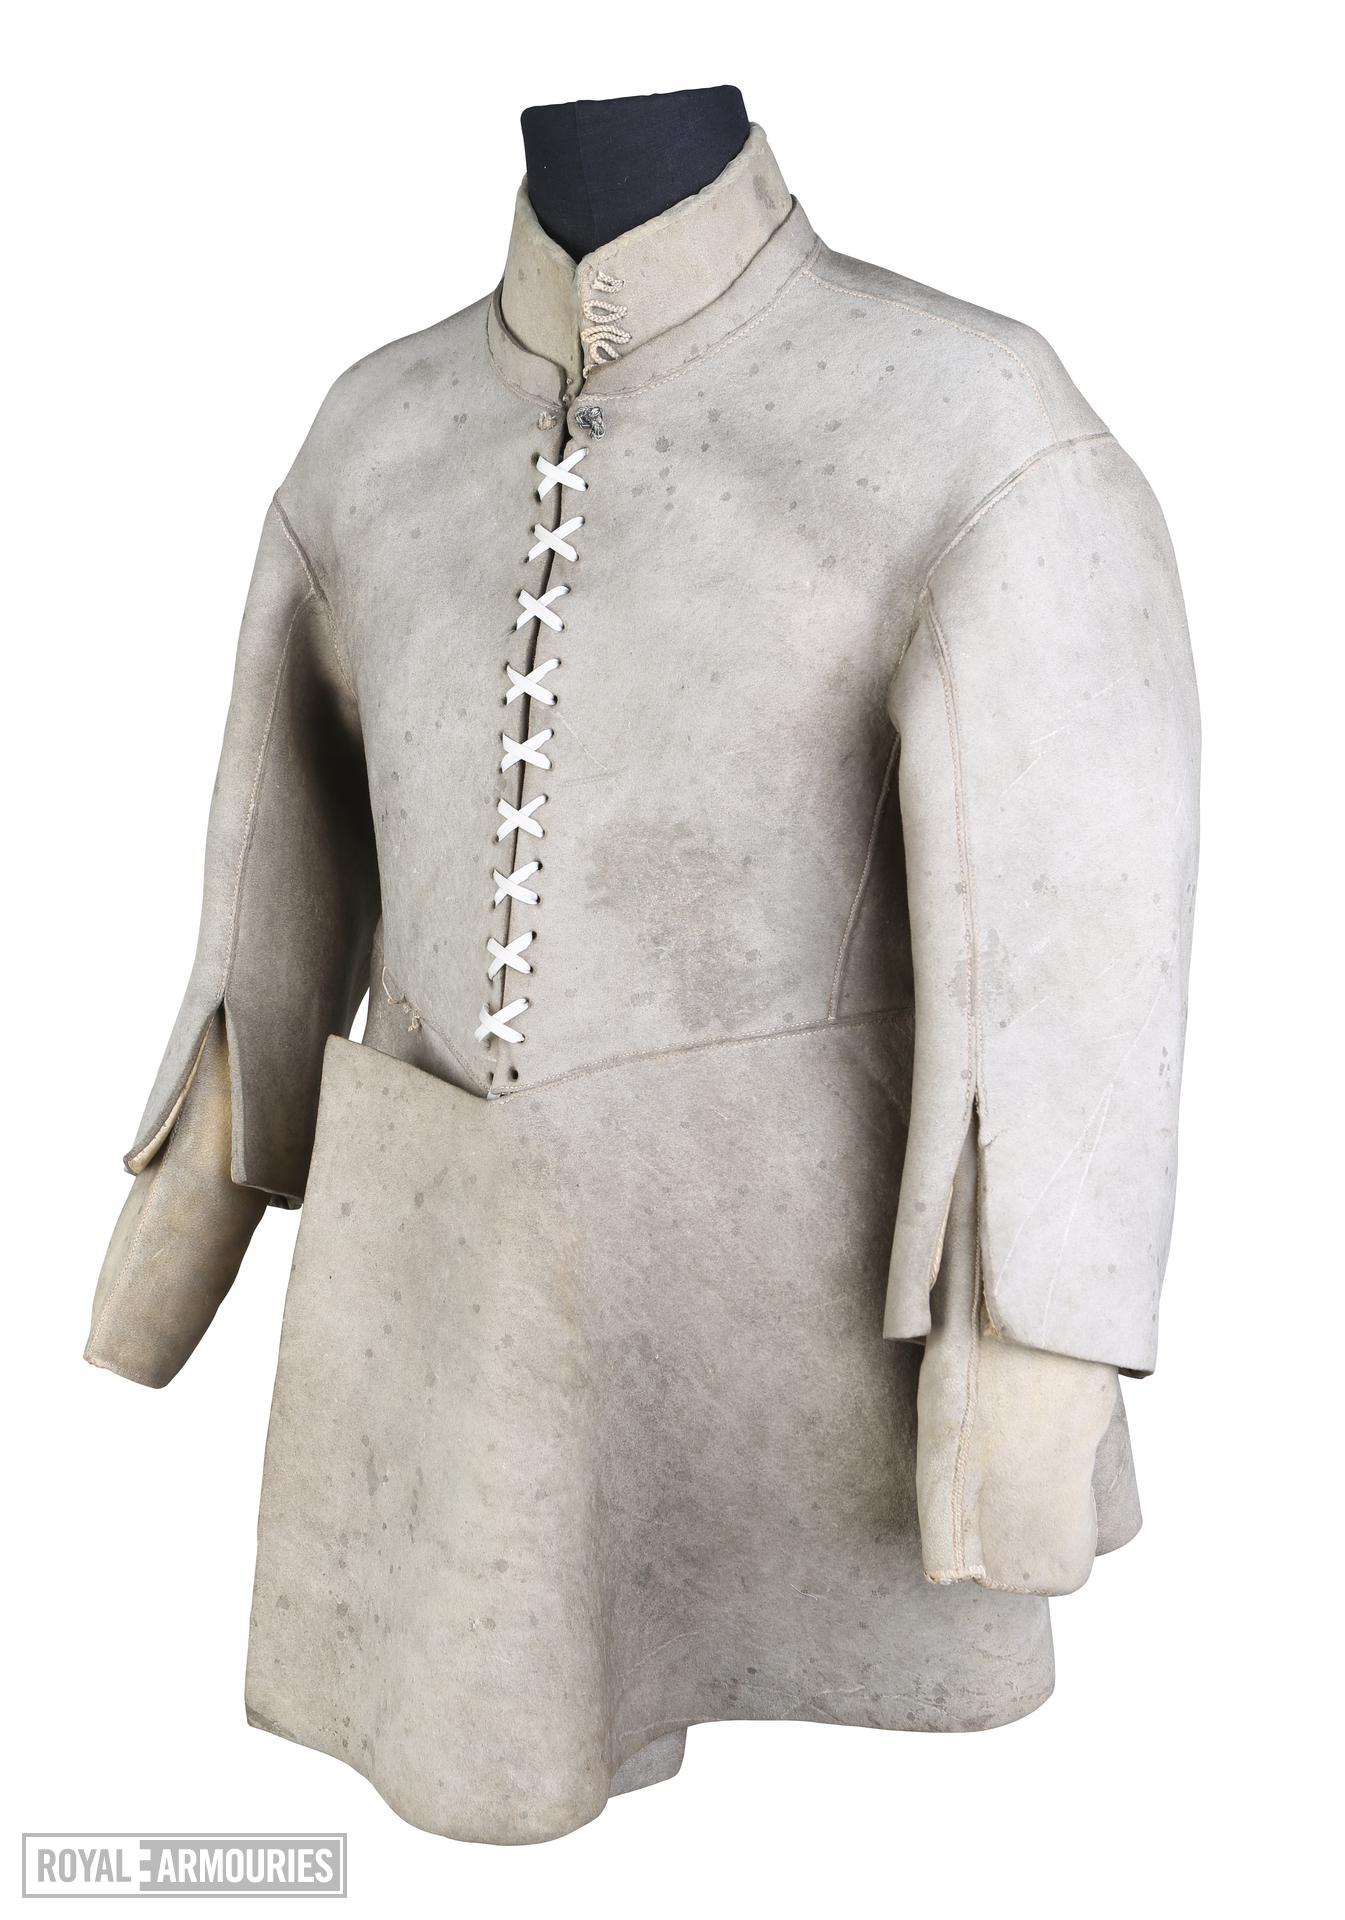 Buff coat with wide overlapping front skirt panels, believed to have belonged to Sir John Gell III.4593